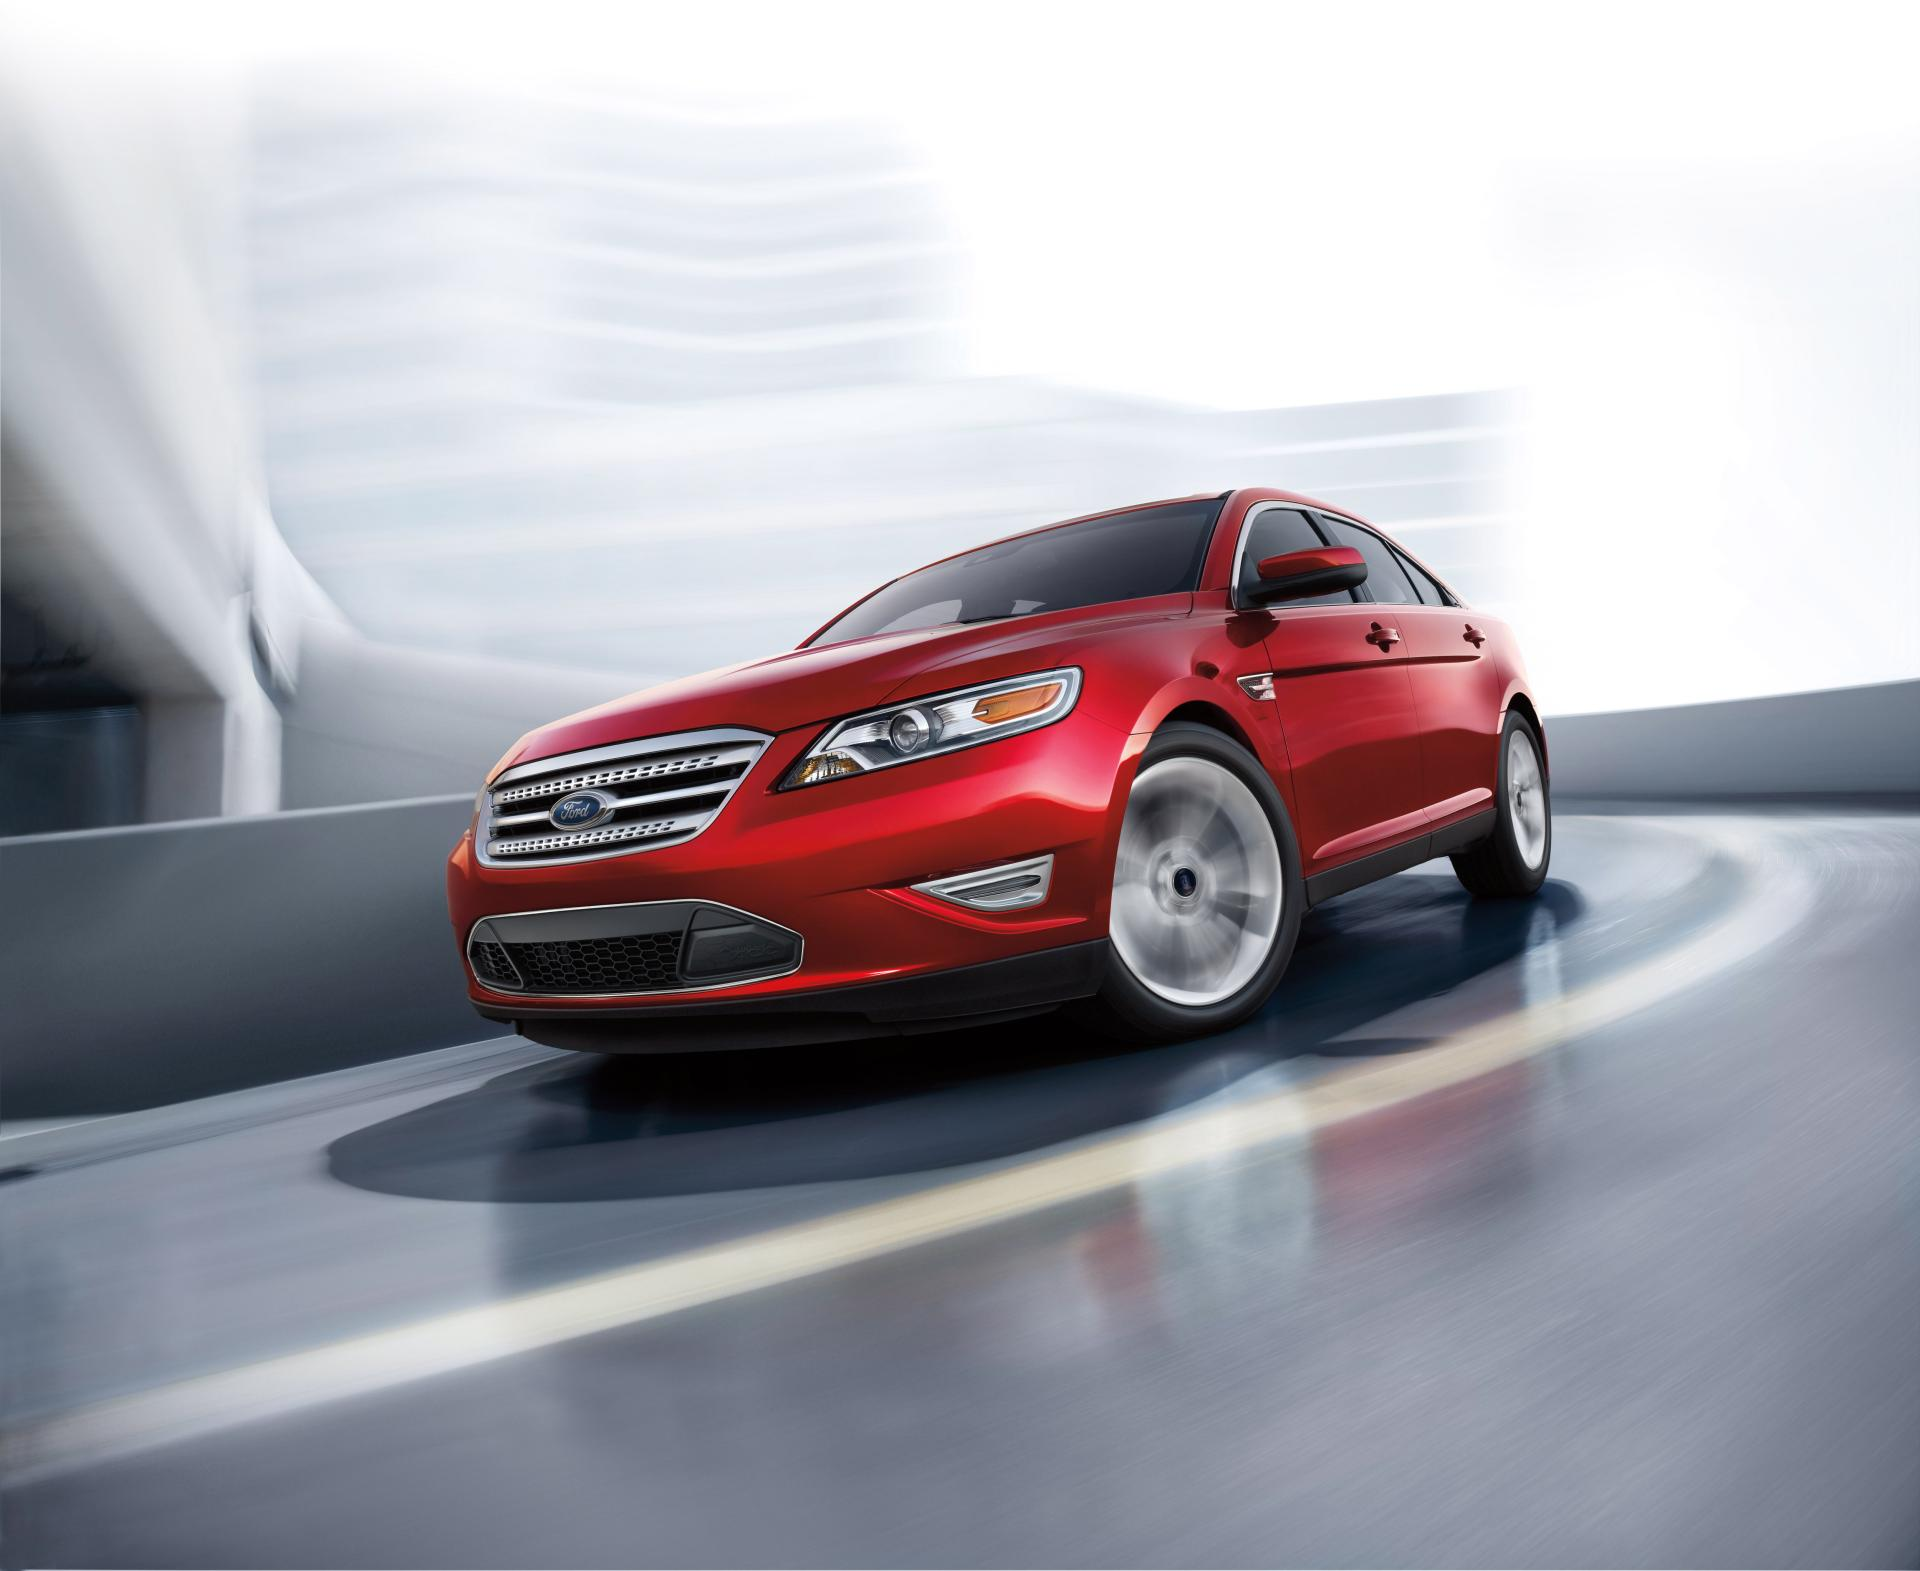 2012 Ford Taurus Image. Photo 17 of 24